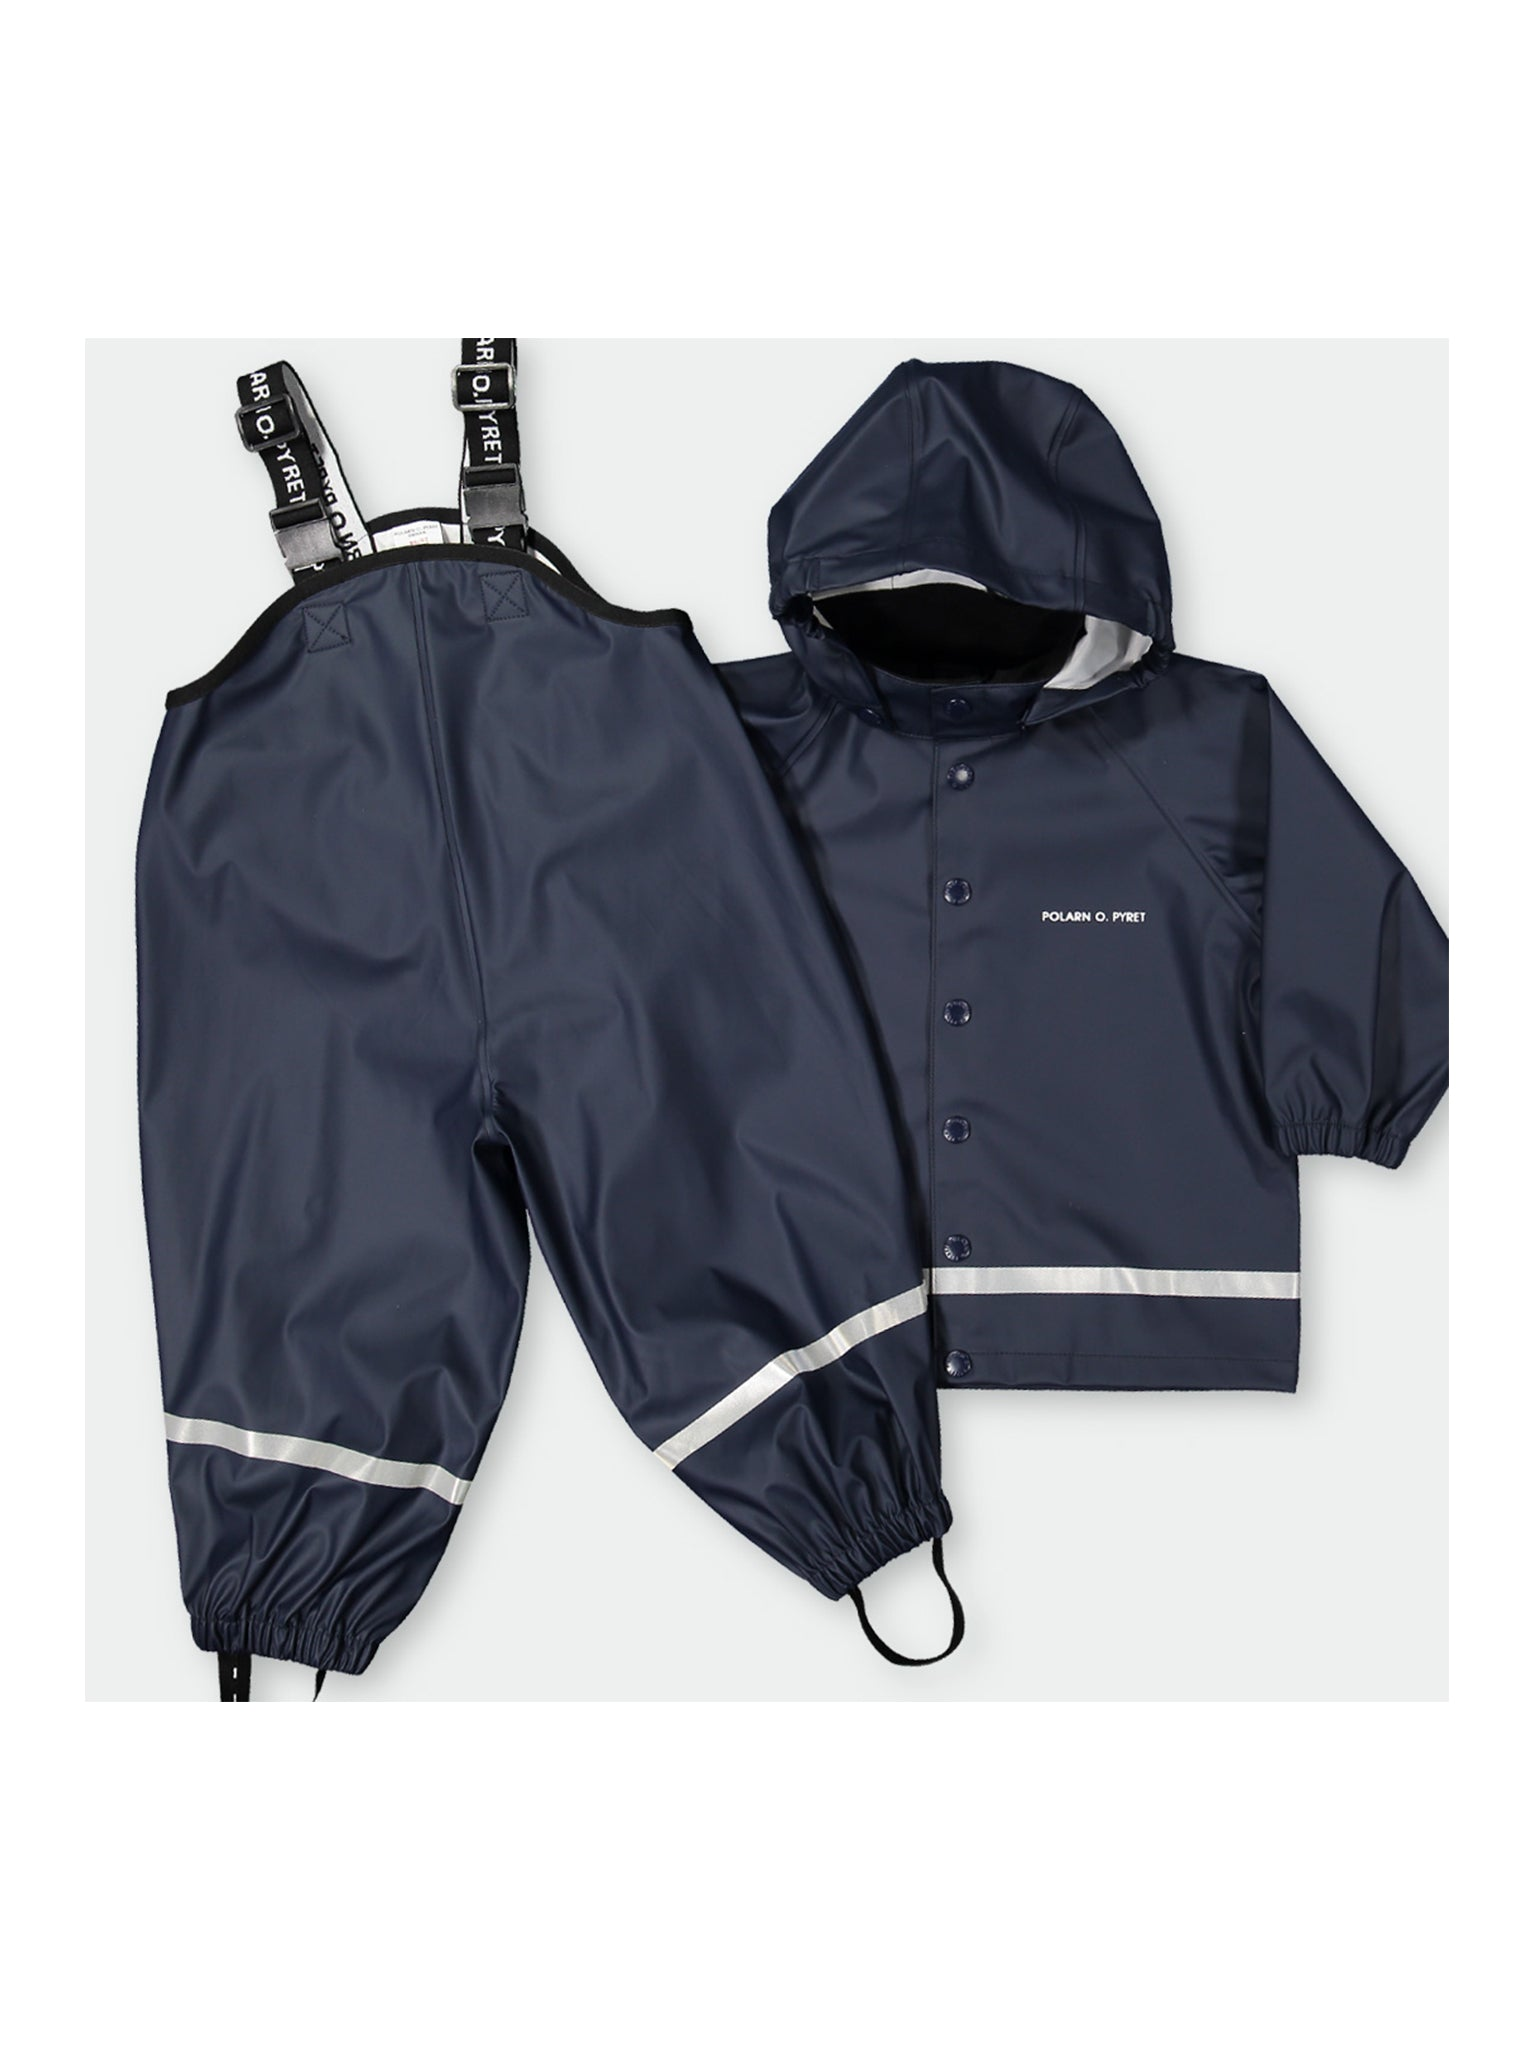 Navy, kids waterproof raincoat which comes with a hood, paired with navy kids rain trousers which comes with a suspender.